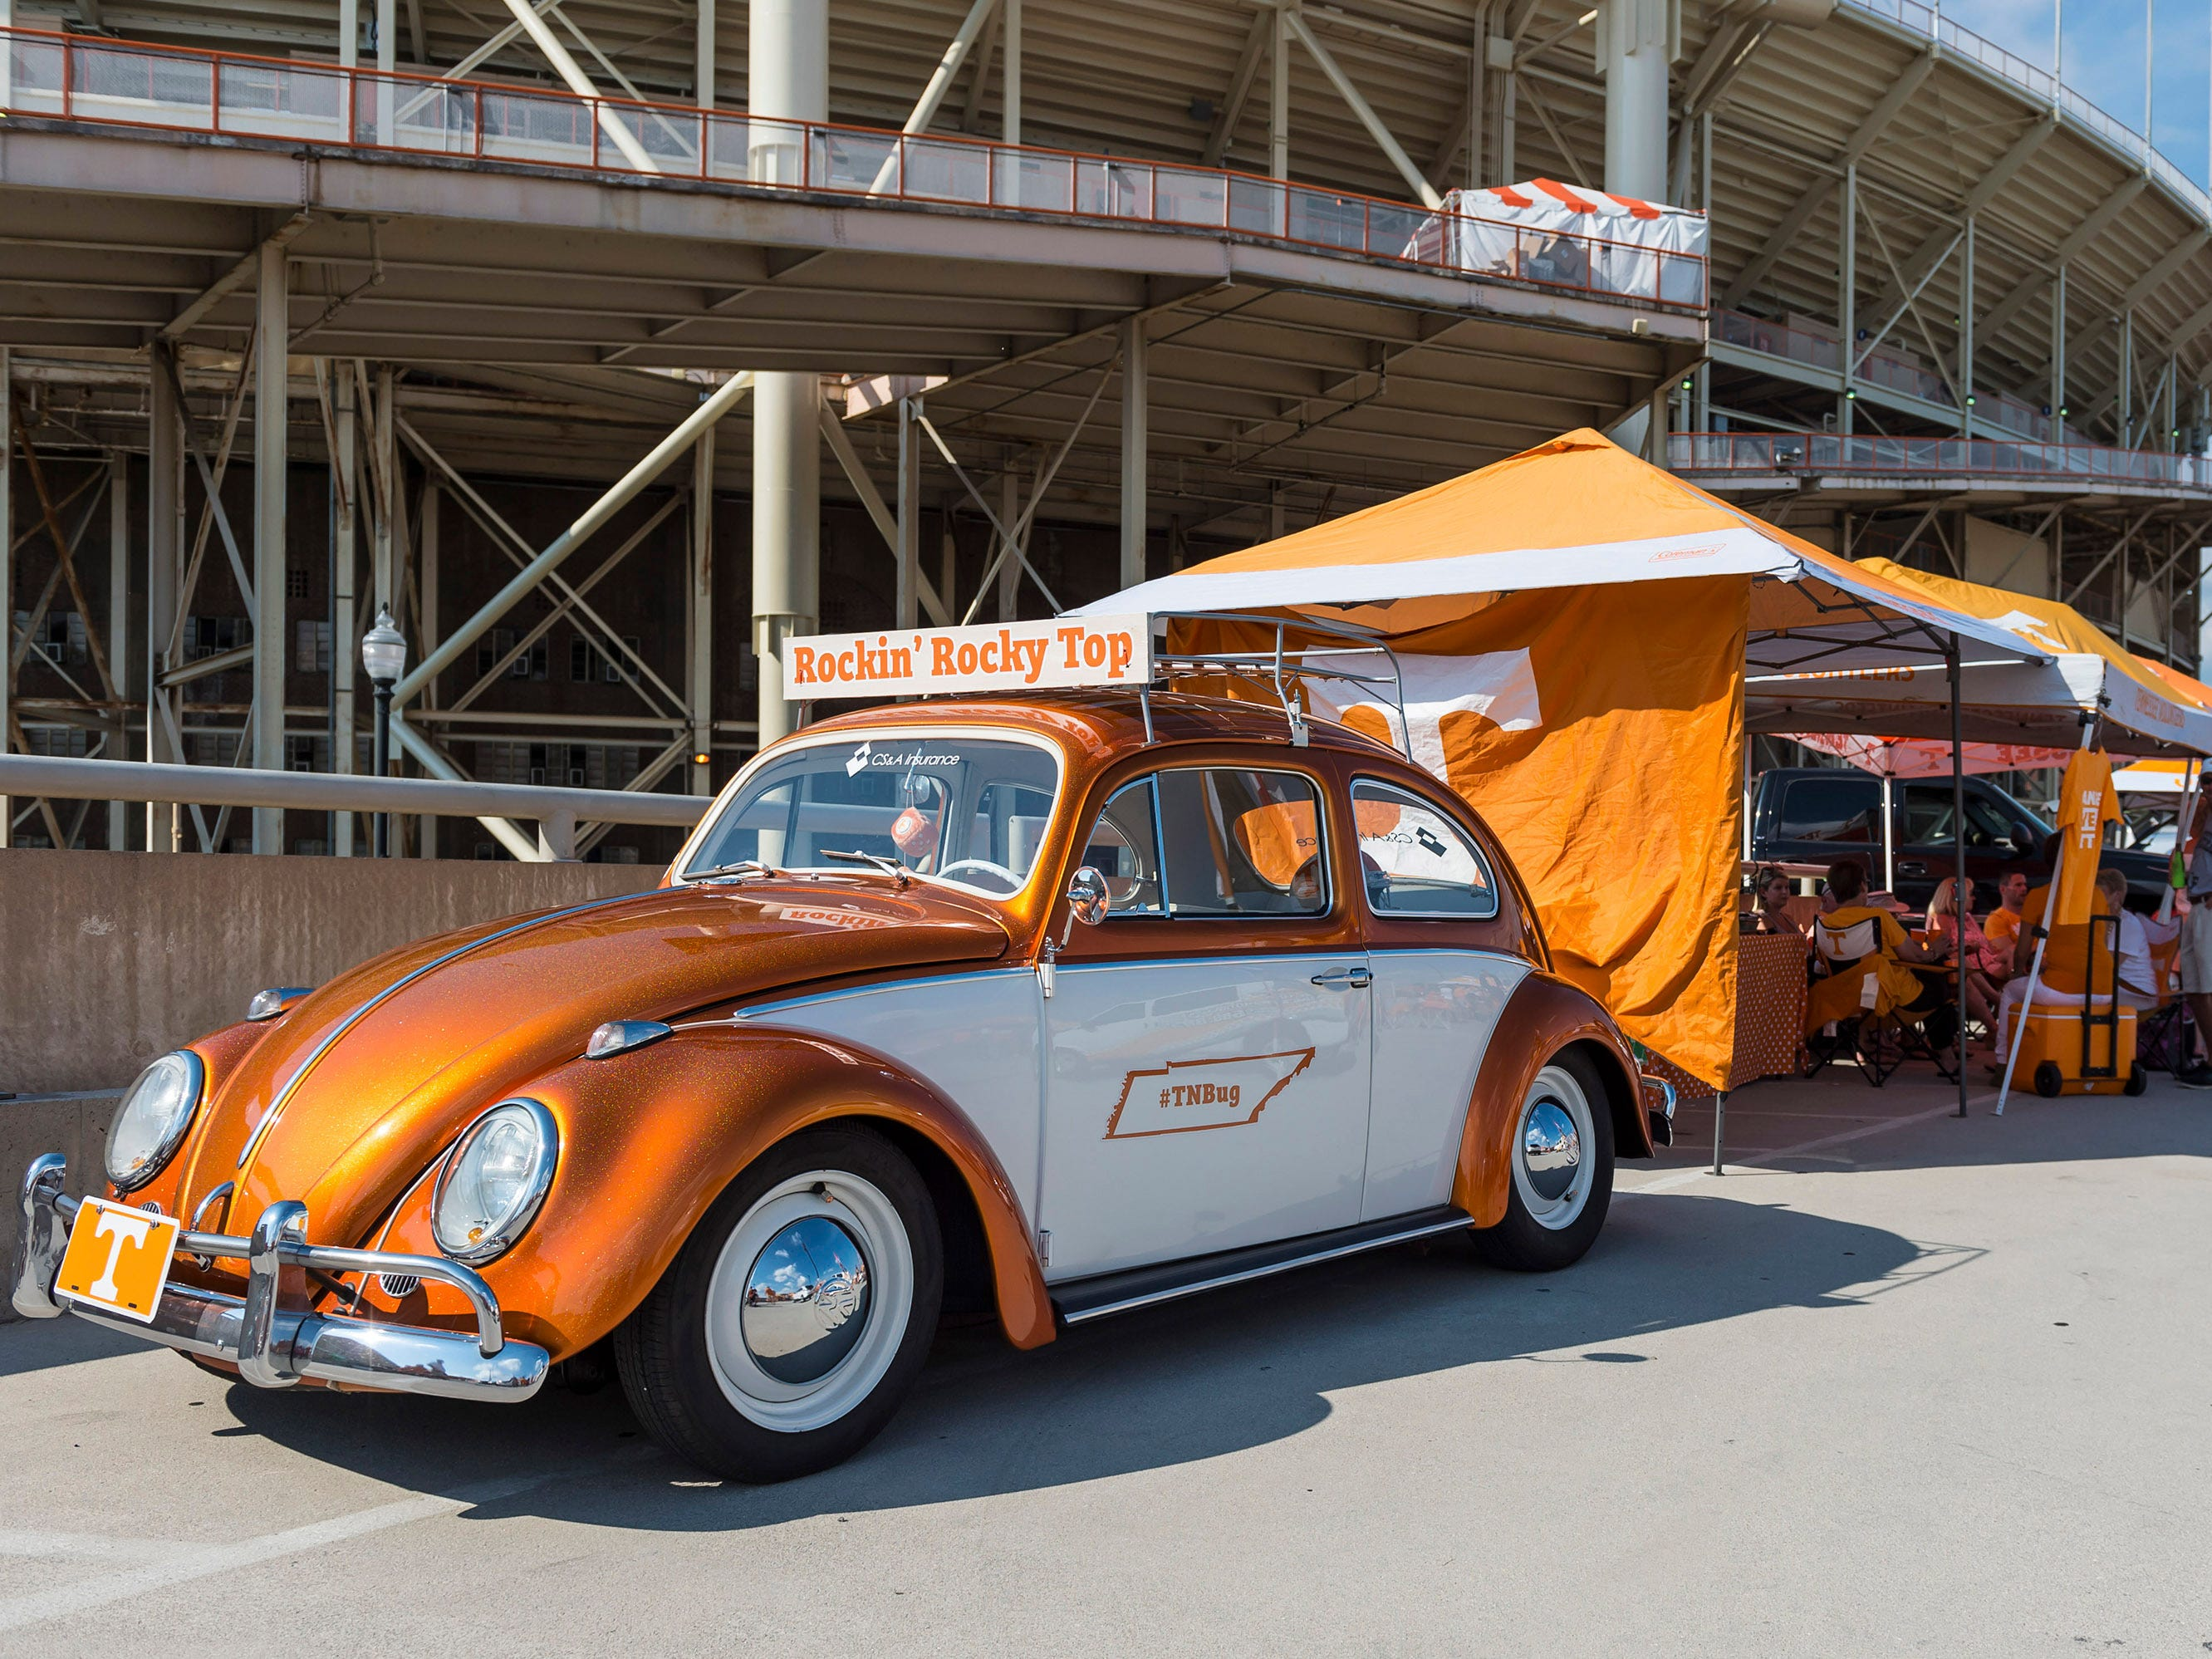 Fans tailgating outside of Neyland Stadium before a game between the Tennessee Volunteers and Florida Gators, Sept. 22, 2018, in Knoxville.